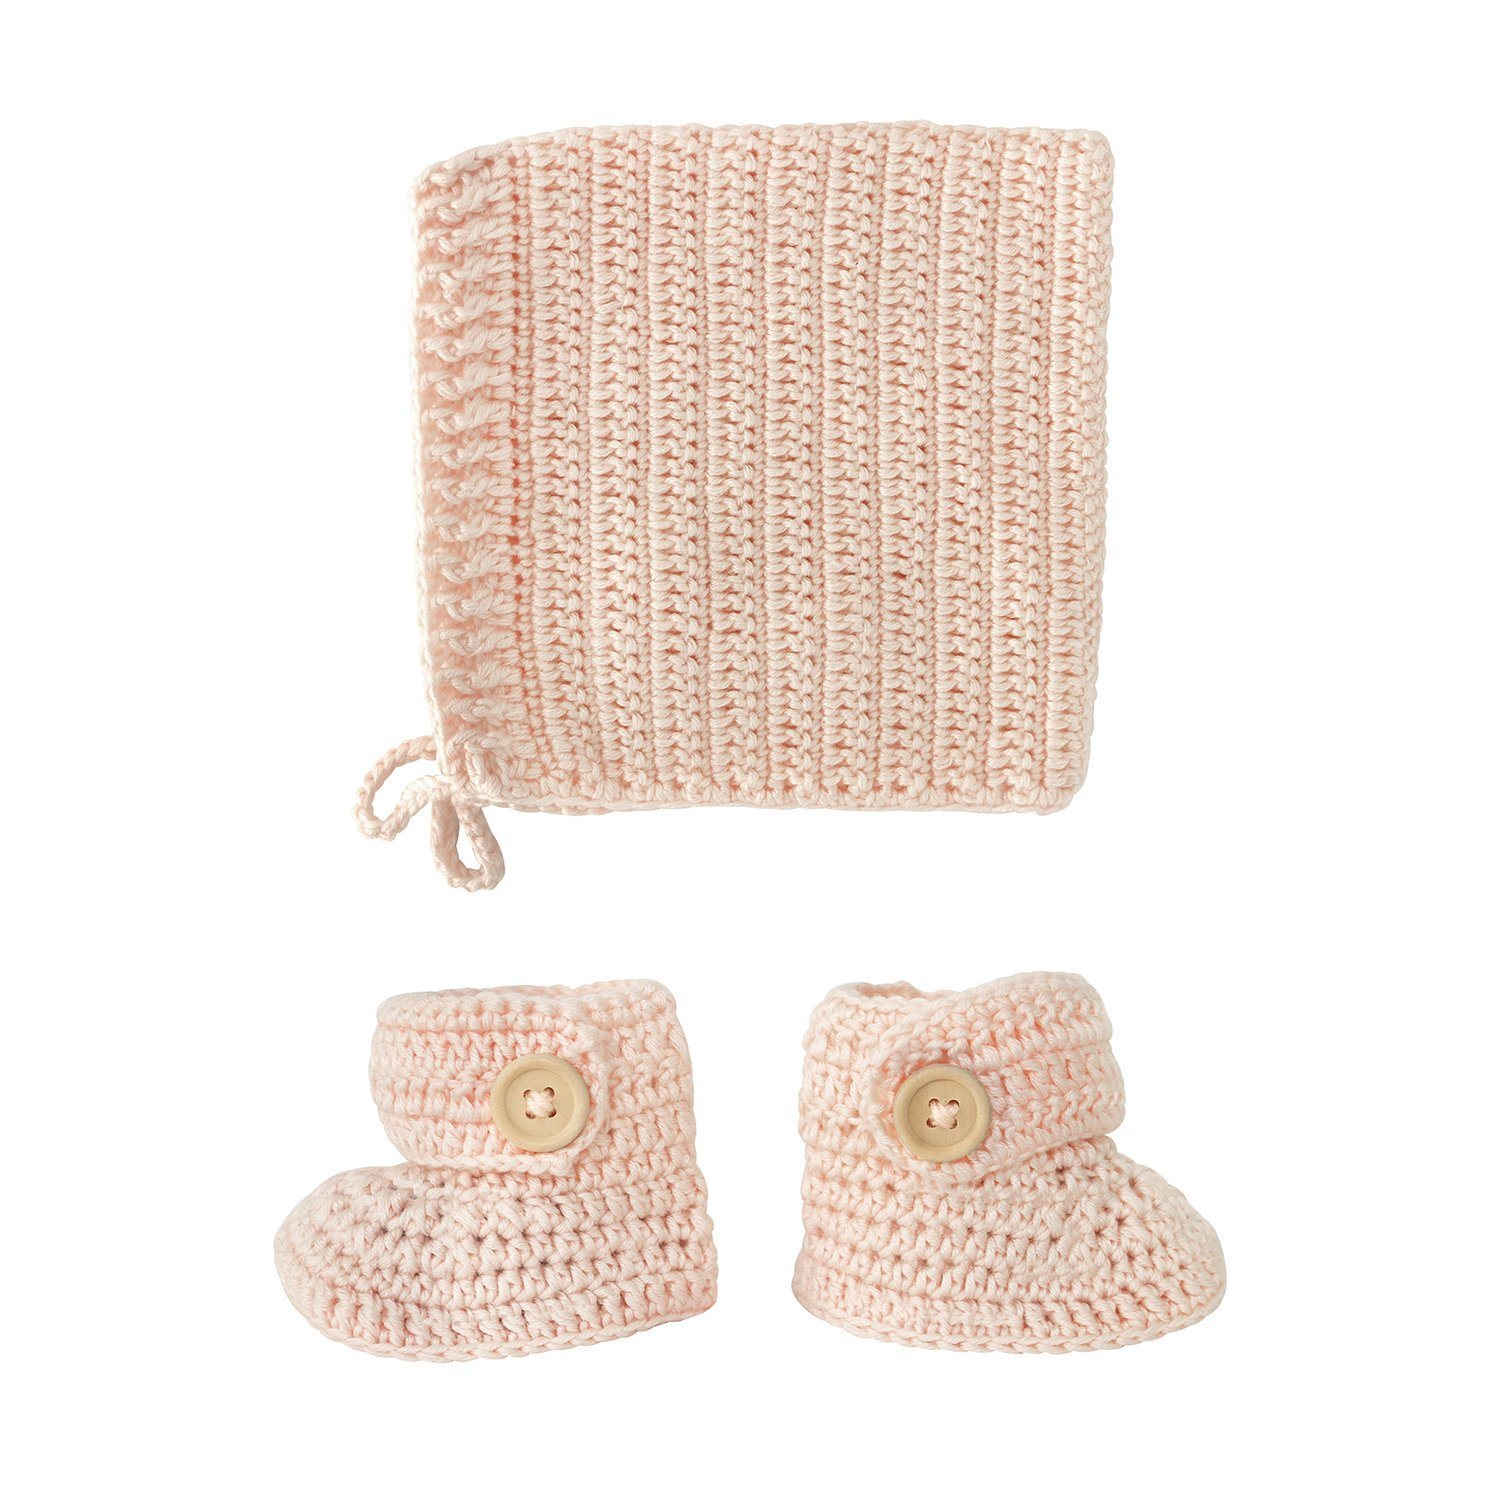 crocheted peach booties and bonnet set